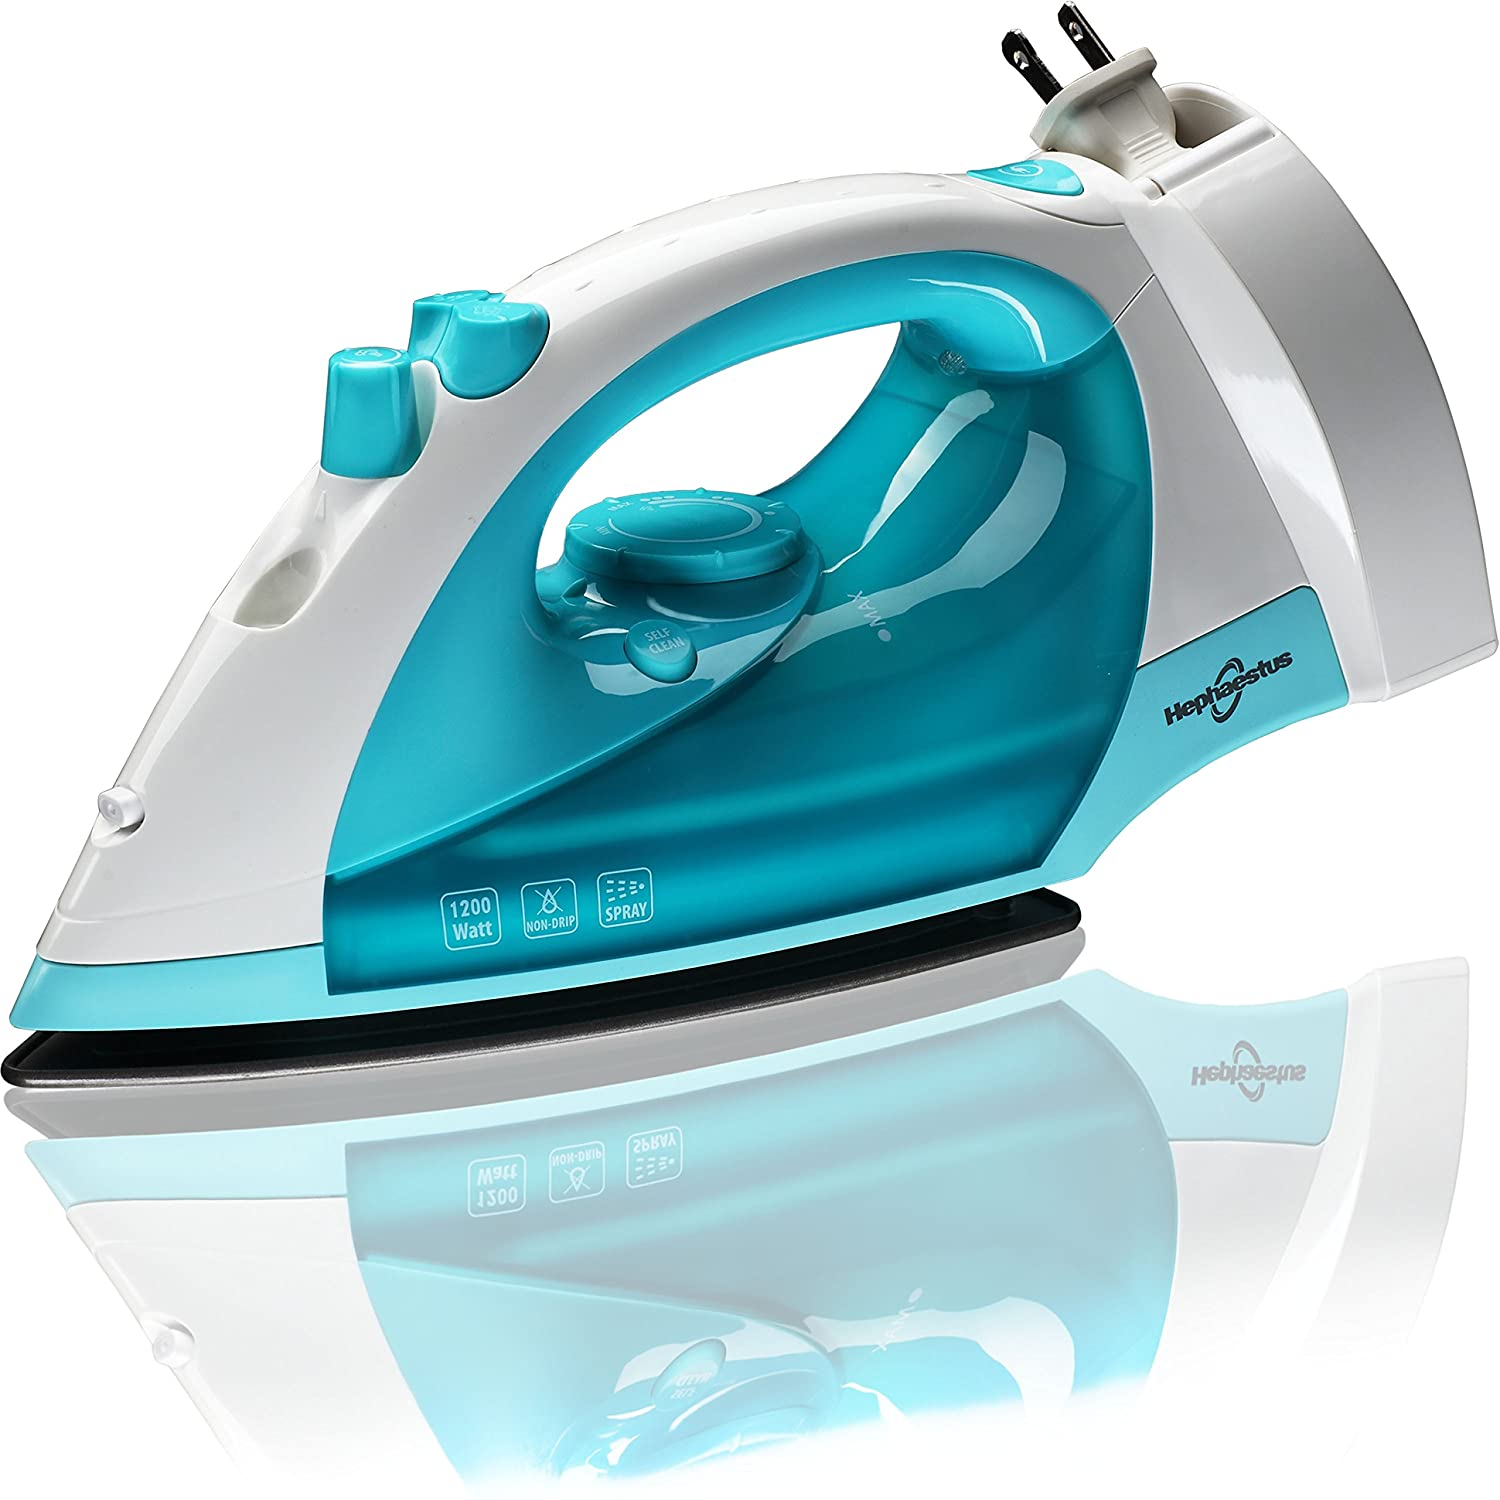 Steam Iron 1200 Watt Nonstick Teflon Soleplate Variable Steam Spray Anti-Drip Self-Cleaning System with 8 Feet Retractable Cord Generic